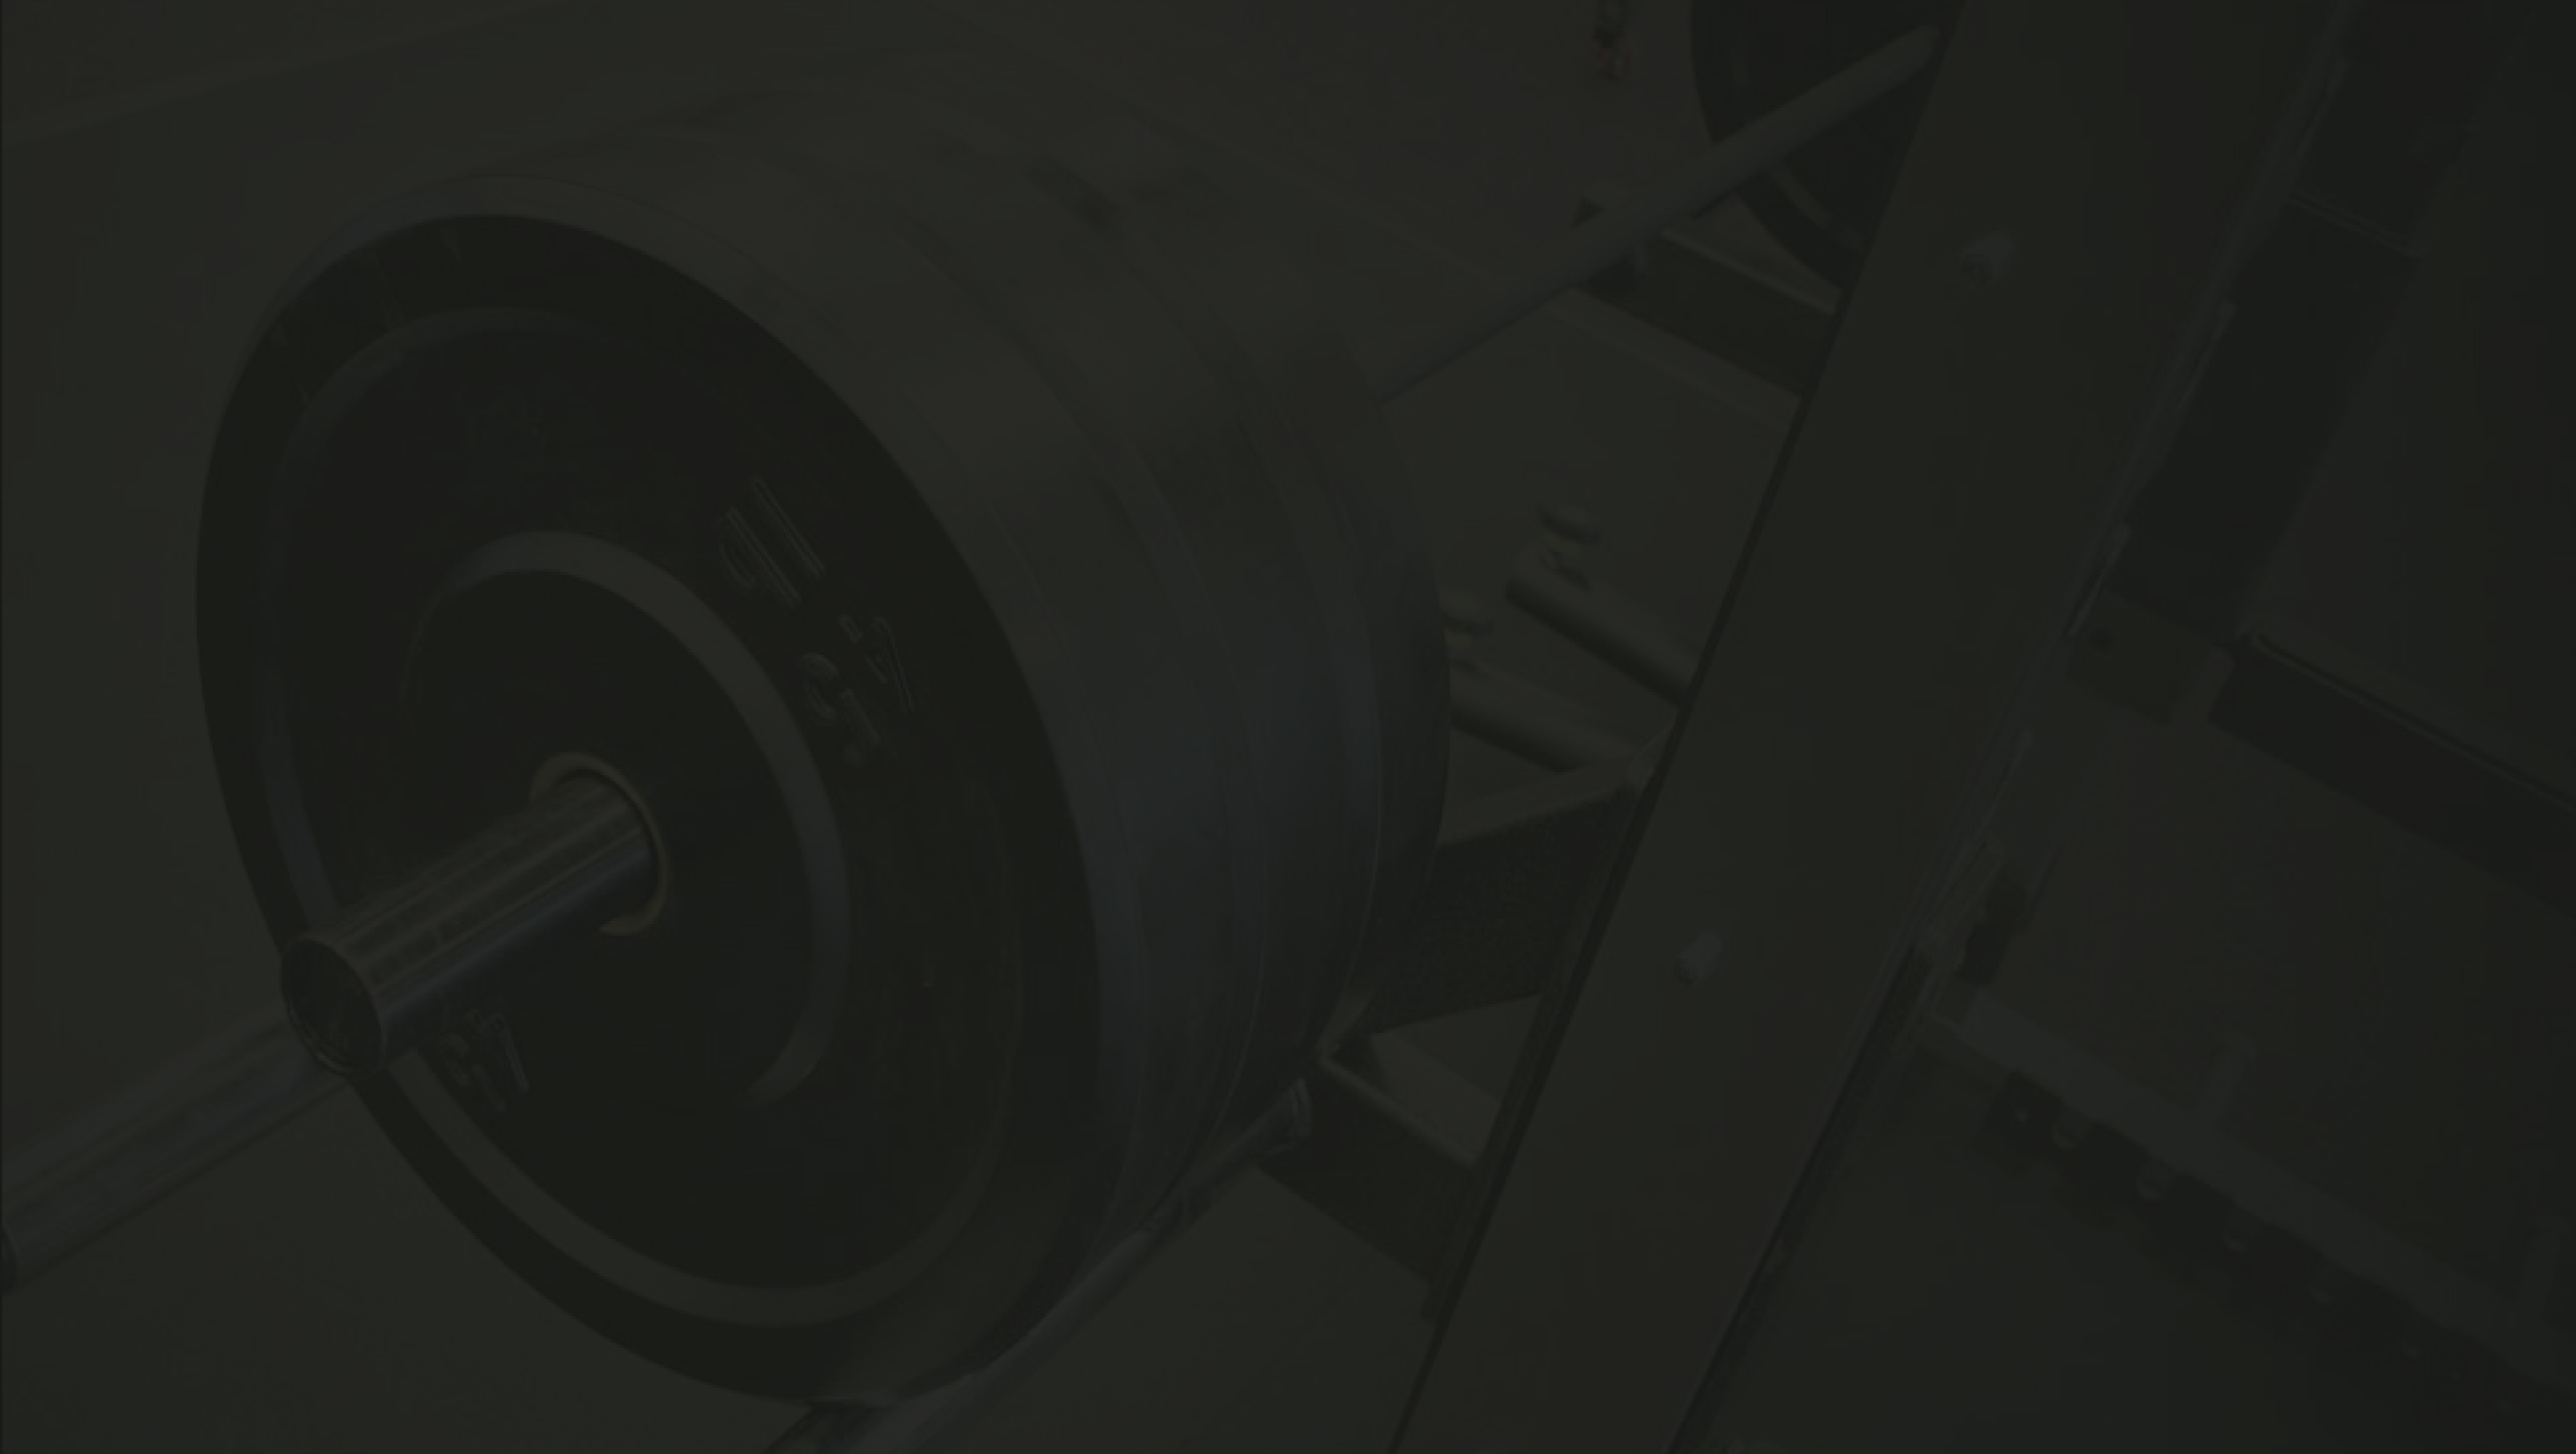 dark grey background with semi transparent pic of chest press weights